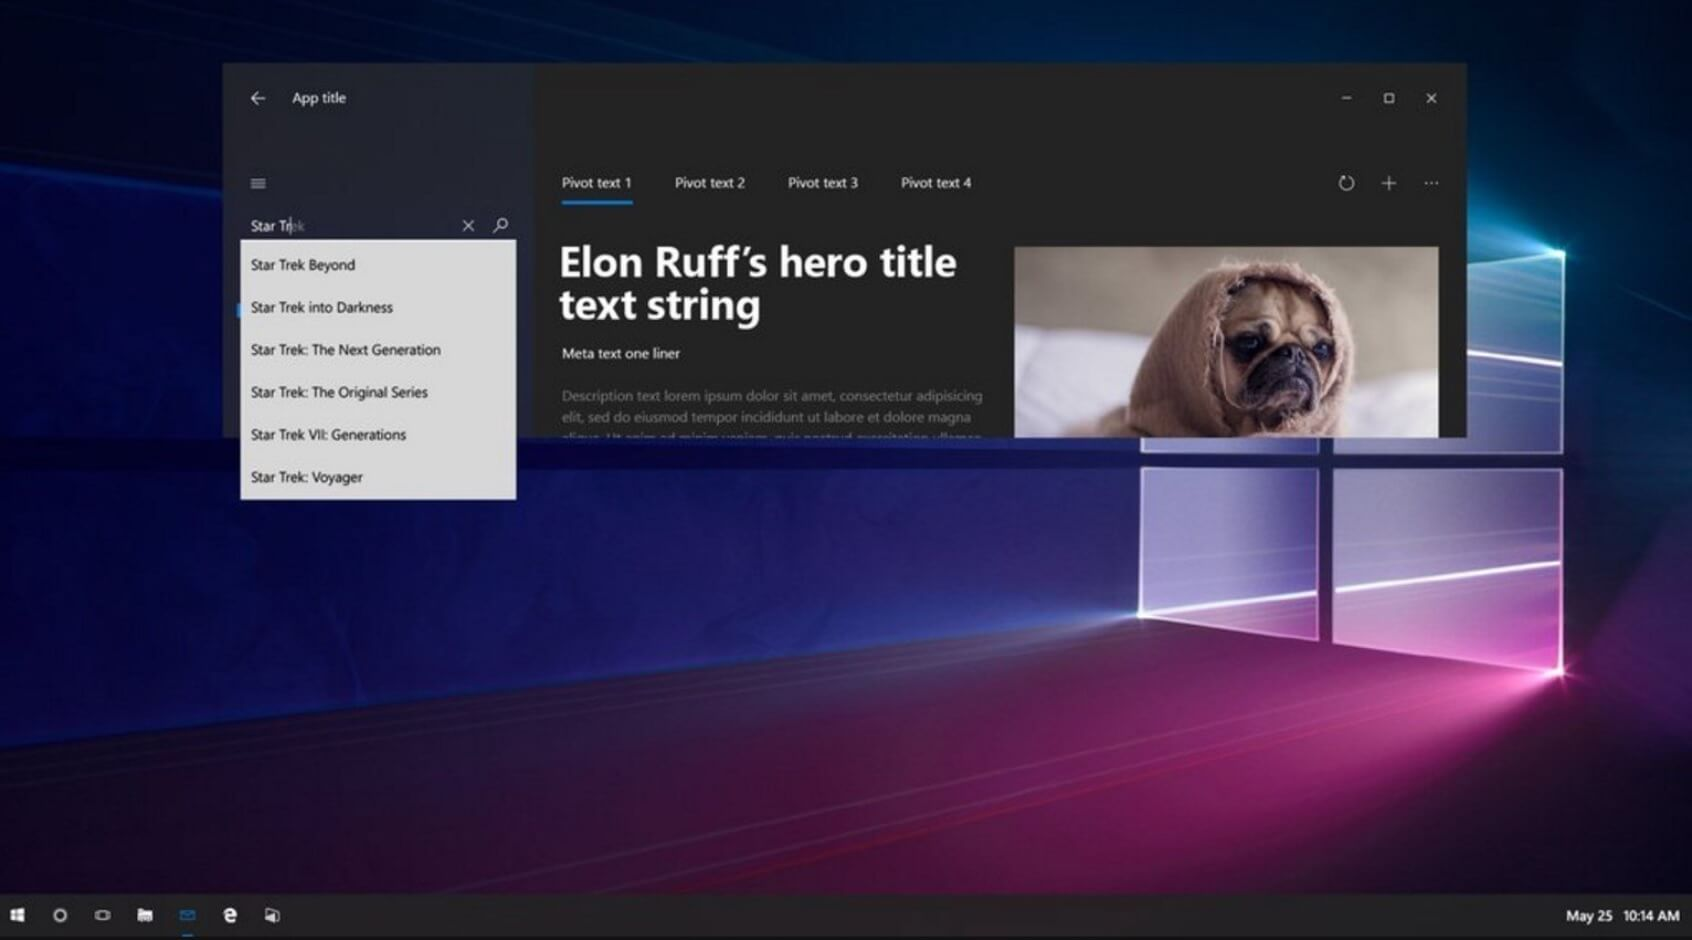 More evidence of Windows 10's new rounded look emerges - WindowsLatest